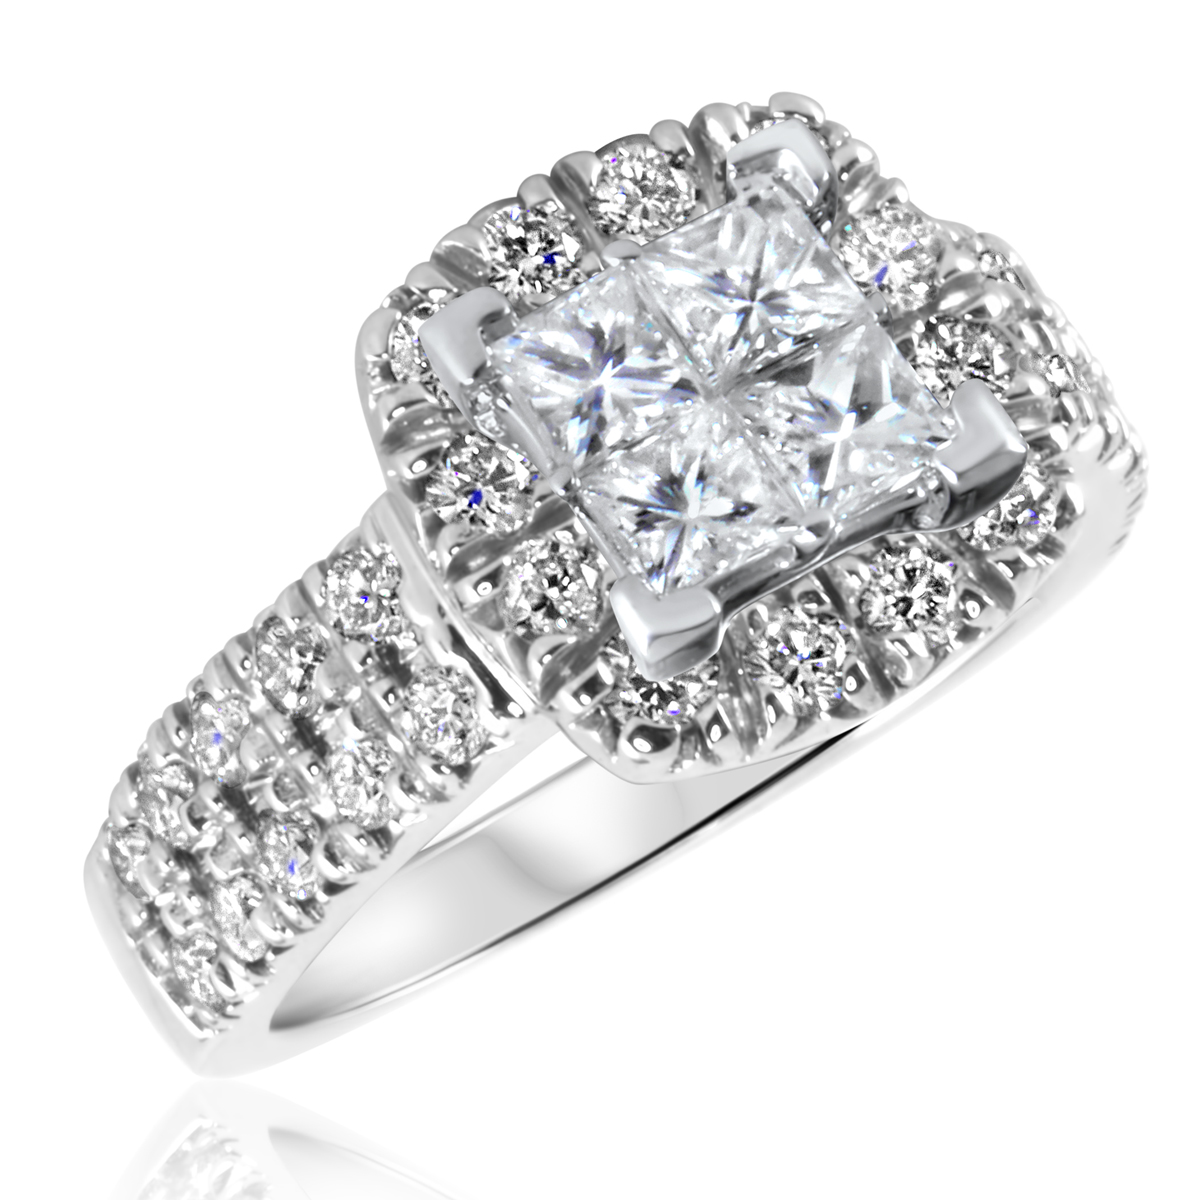 1 5/8 CT. T.W. Diamond Ladies Engagement Ring 14K White Gold- Size 8